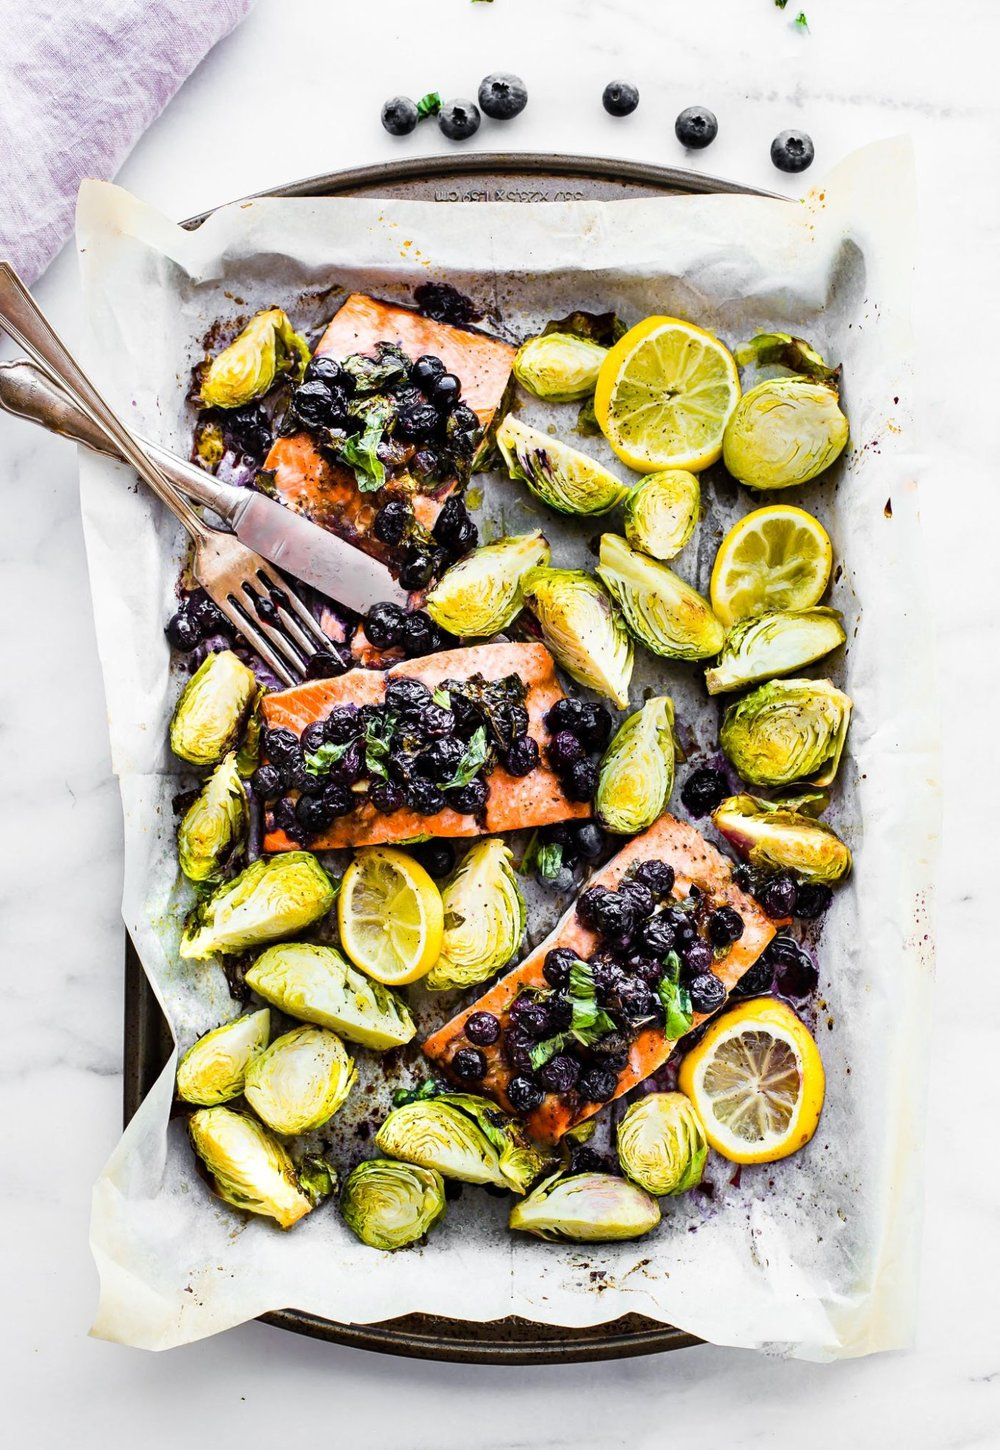 blueberry Salmon and brussels  - Recipe by: Cotter Crunch Can use frozen blueberries to save some money